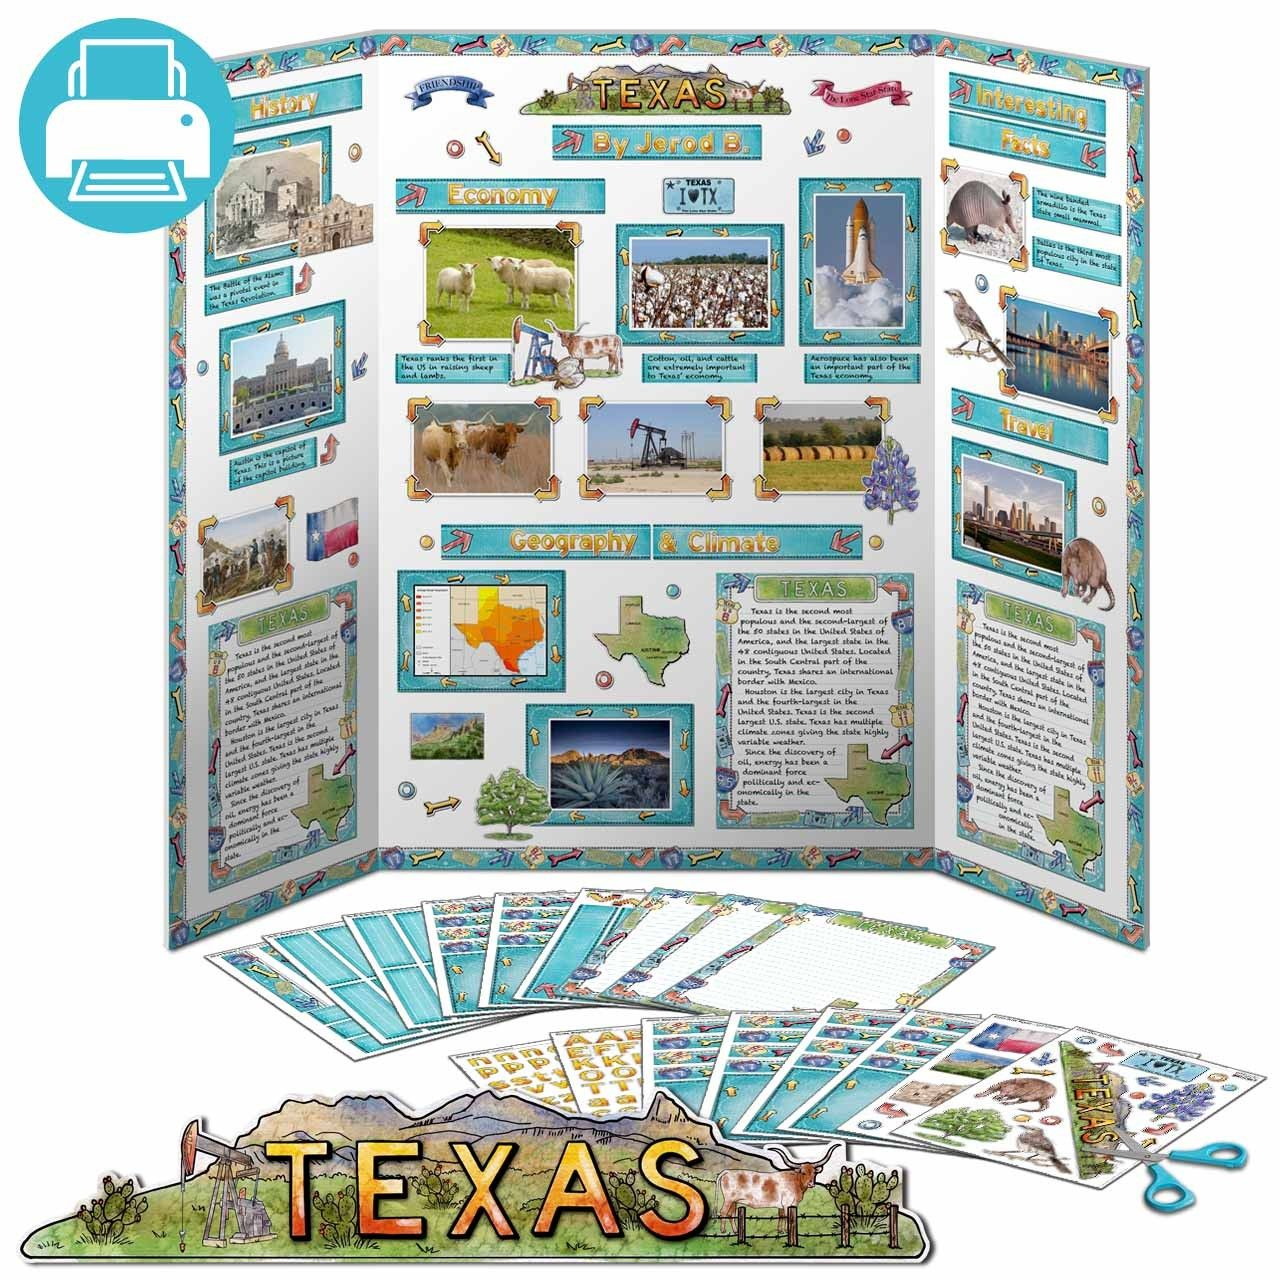 Texas state report kit homeschool school and social studies print instantly decorations for a texas state report poster board instantly at home printable kit buycottarizona Images